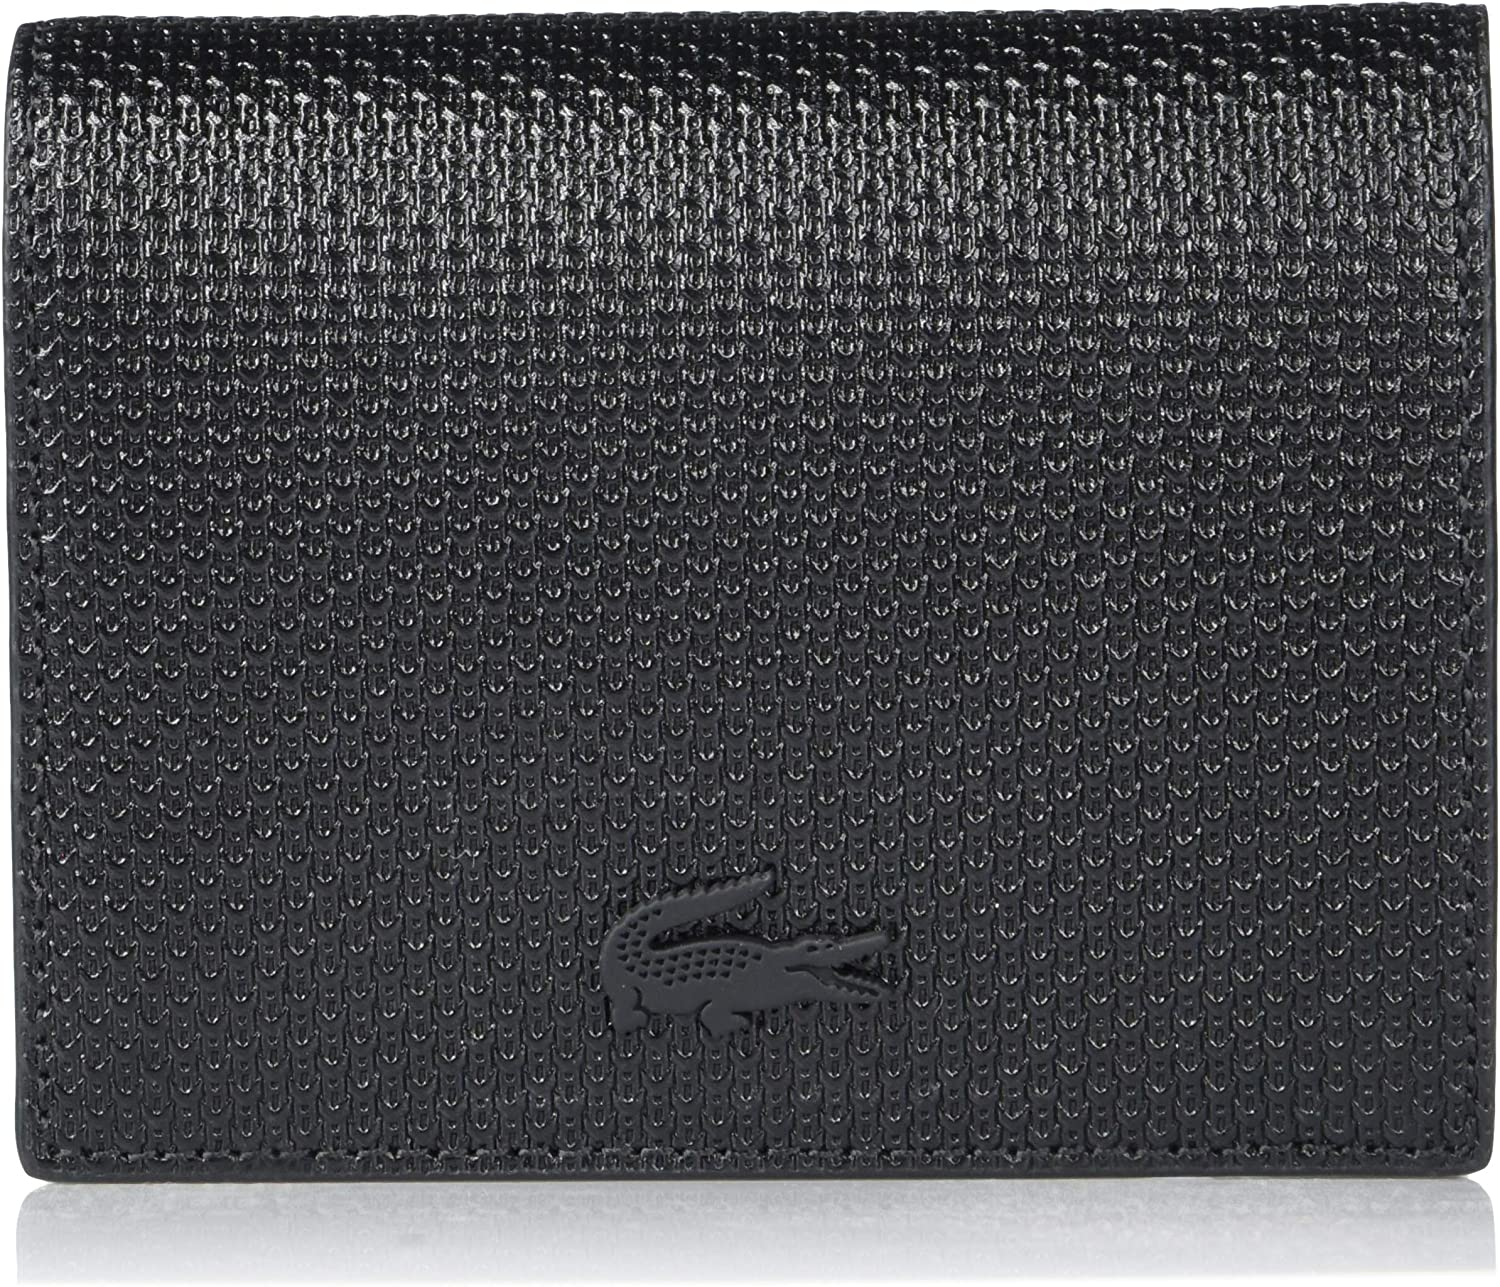 Lacoste Women's Leather Snap Coin Purse Wallet